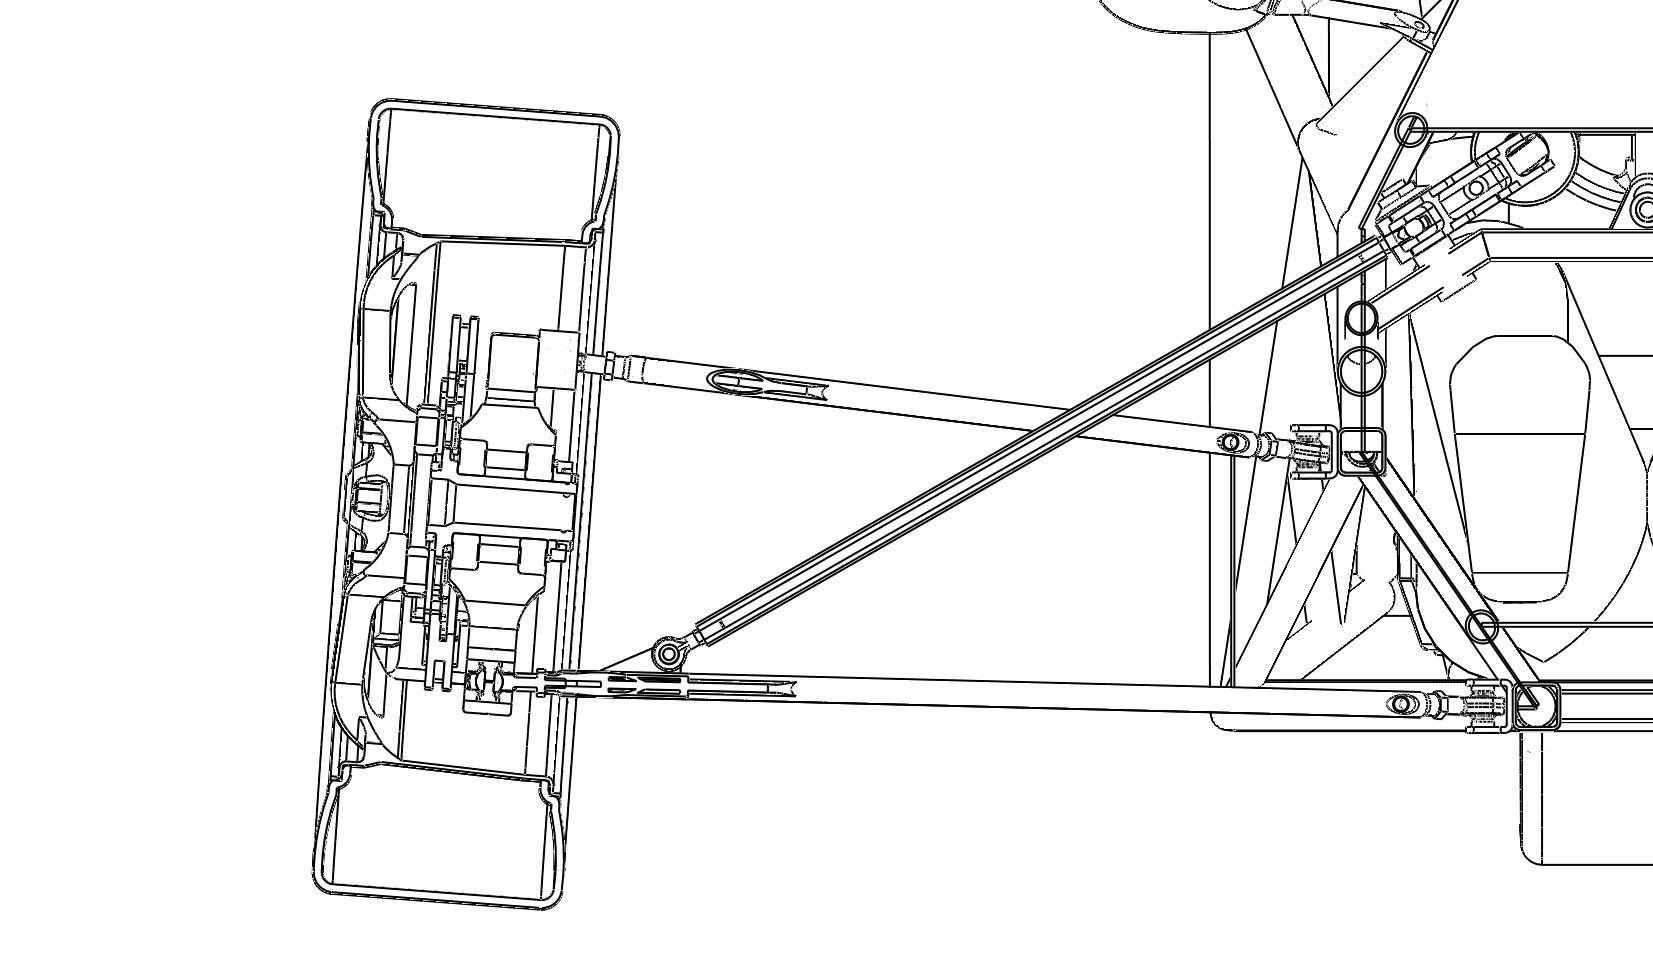 Front suspension - a good discussion of reverse trike front